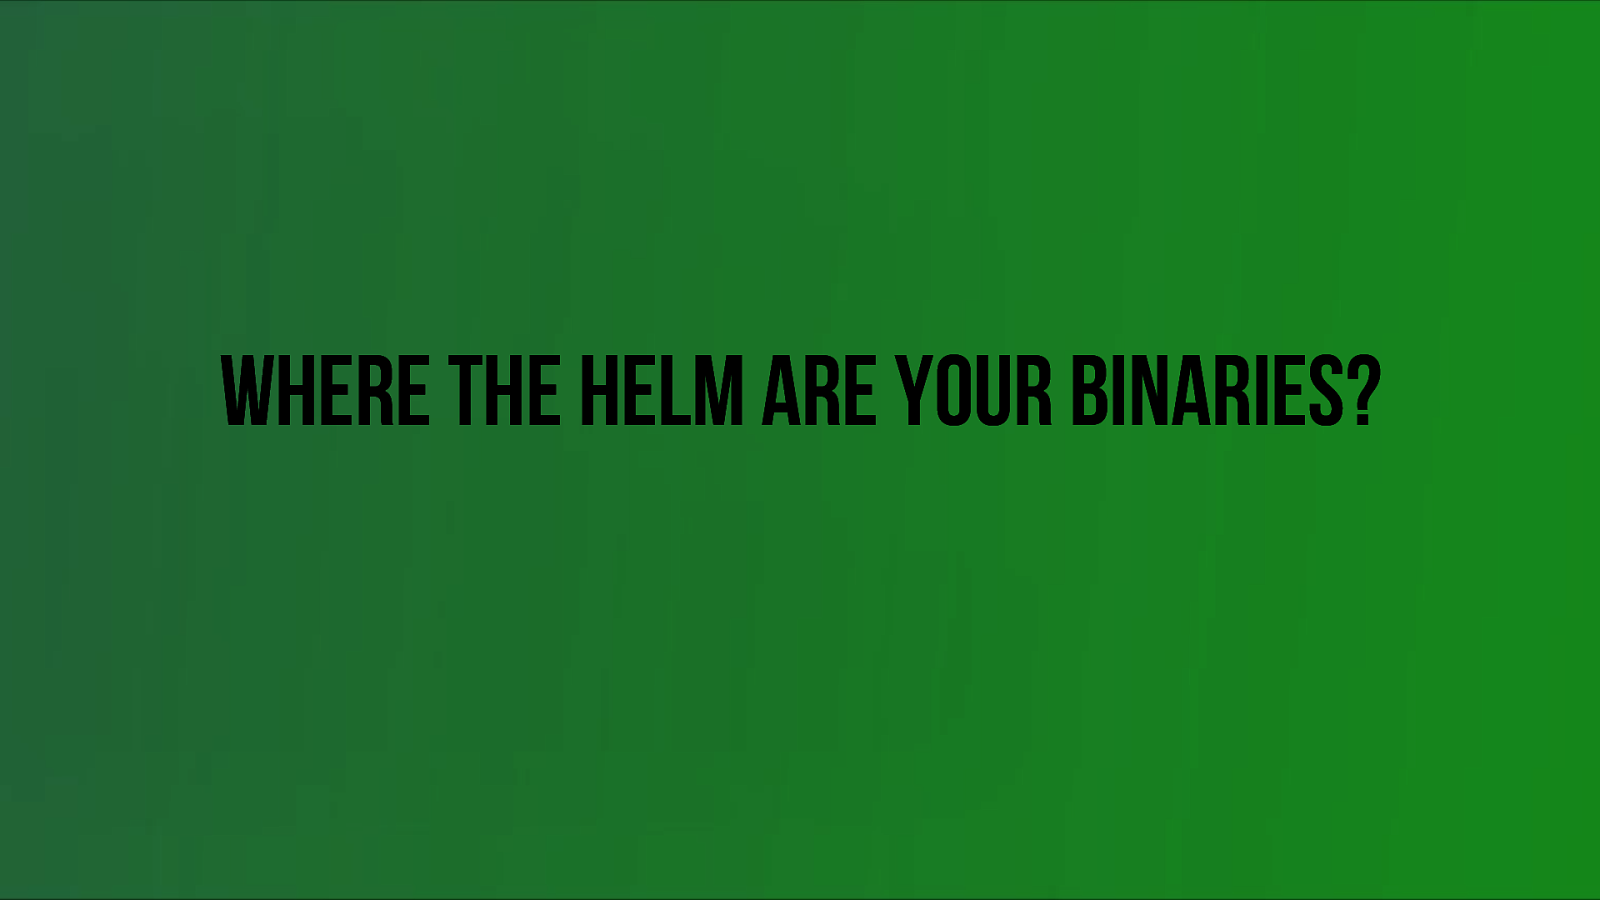 Where the Helm are your binaries?